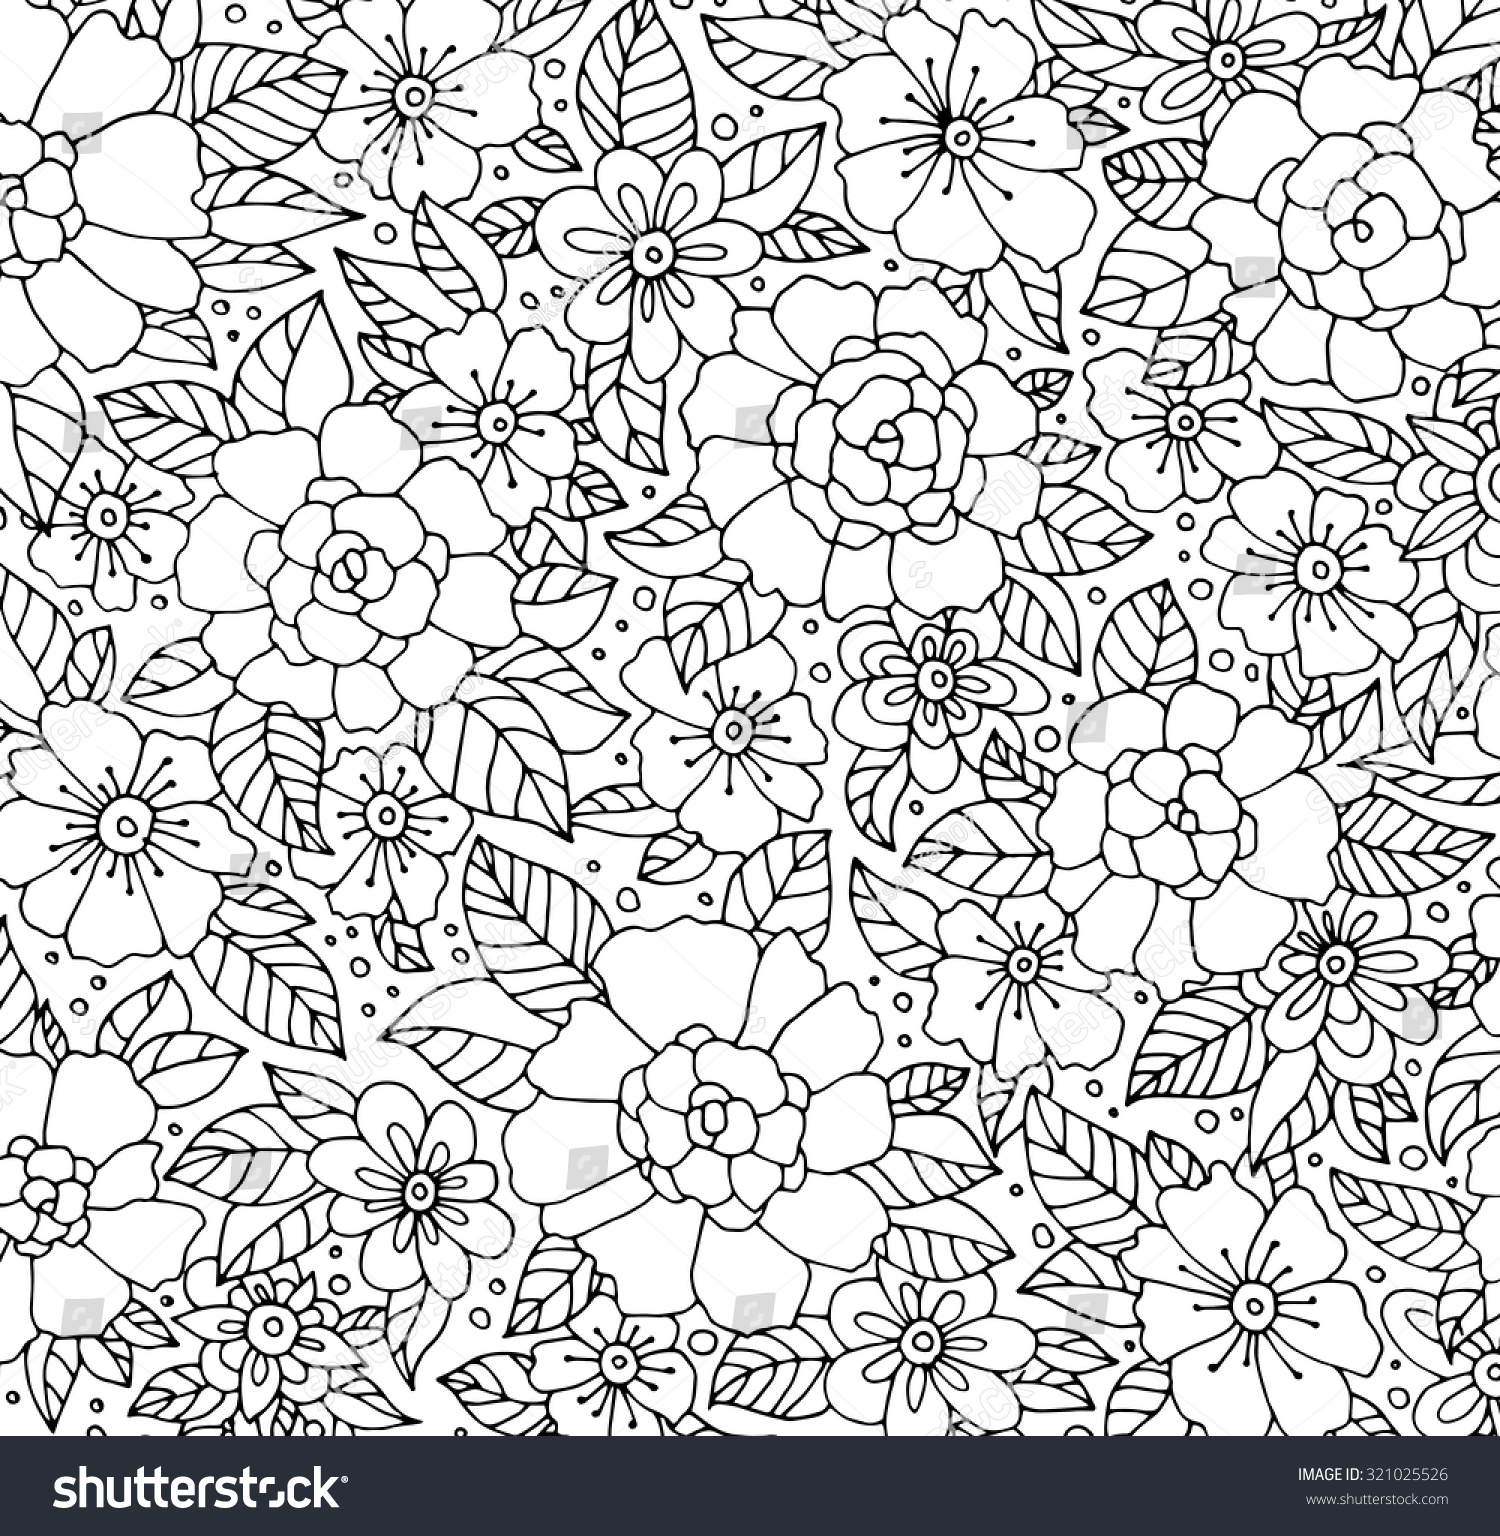 forest flowers vector coloring book pages stock vector 321025526